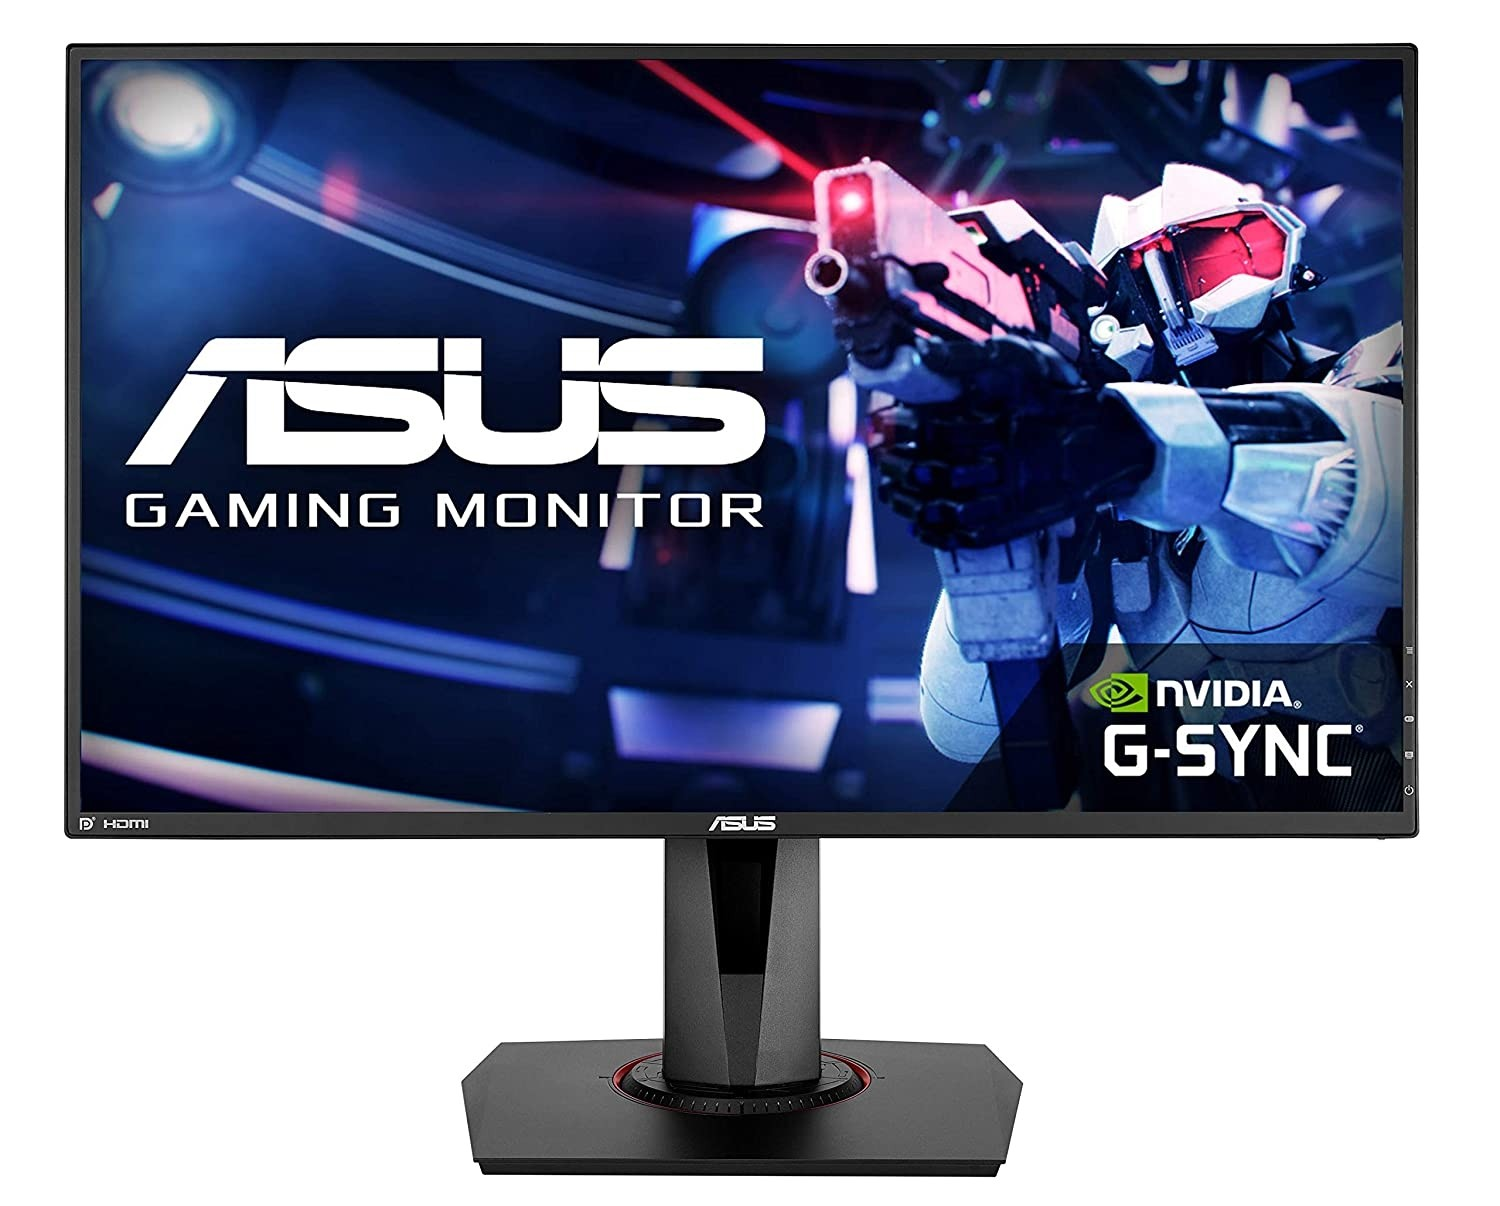 """Refurbished laptops & desktops - ASUS VG278QR, 27"""" FULL HD (1920X1080) NVIDIA G-SYNC COMPATIBLE ESPORTS GAMING MONITOR, 0.5MS, UP TO 165 HZ, DP, HDMI, DVI, FREESYNC, LOW BLUE LIGHT, FLICKER FREE, TUV CERTIFIED"""